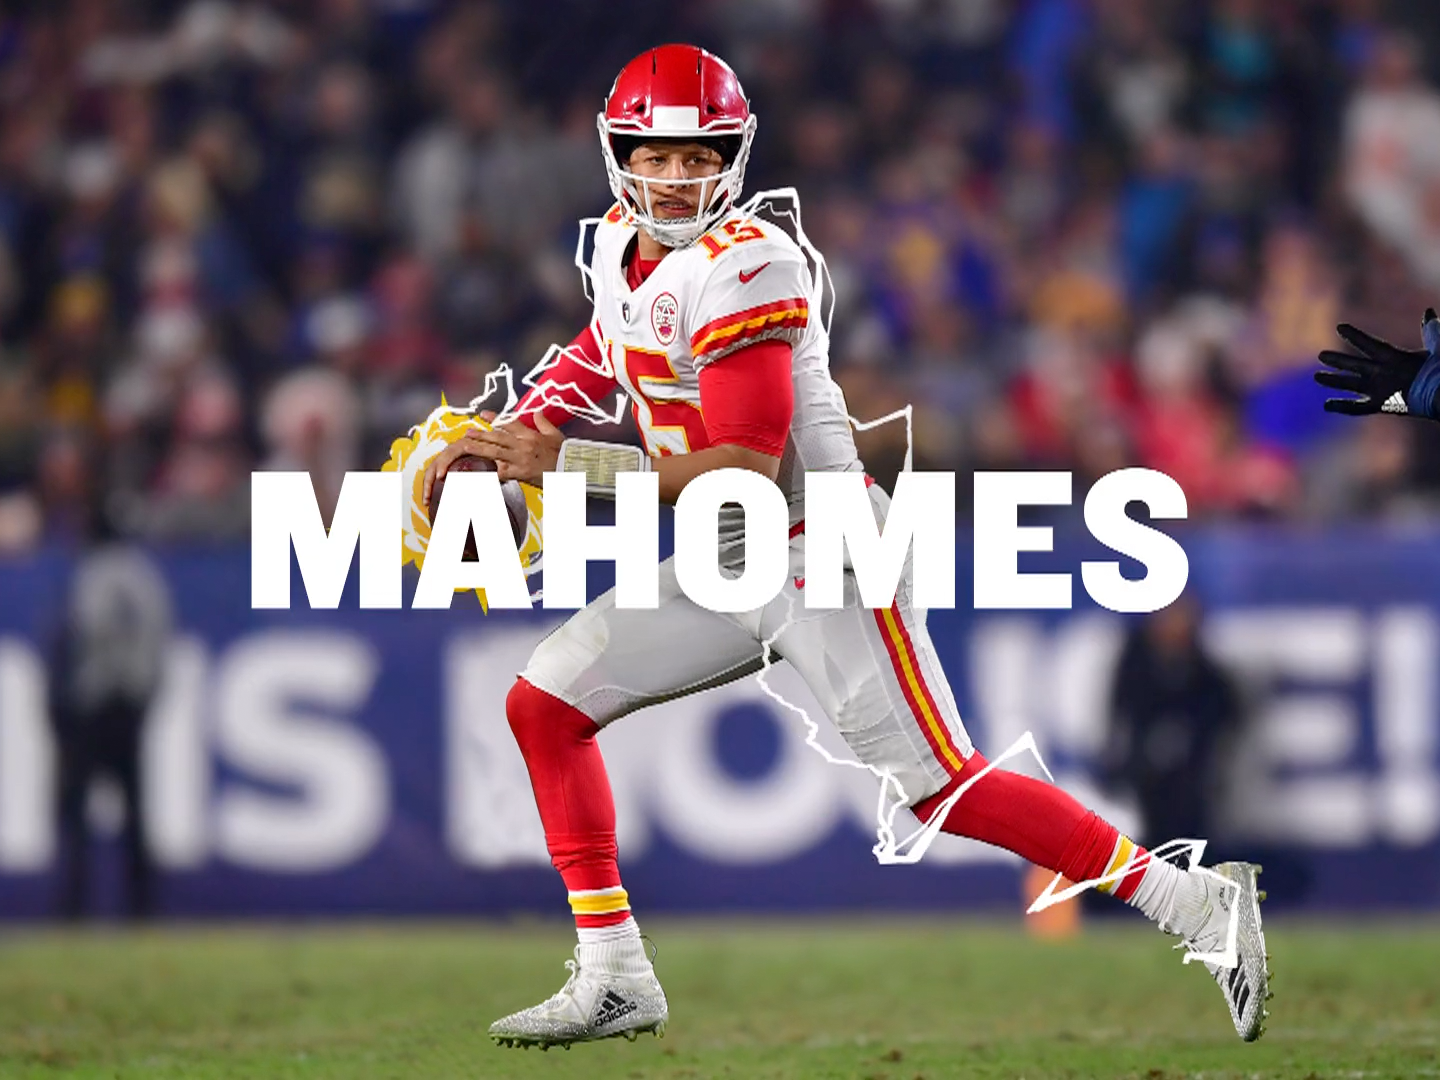 Friends + Football = ESPN FANTASY (Mahomes) Thumbnail